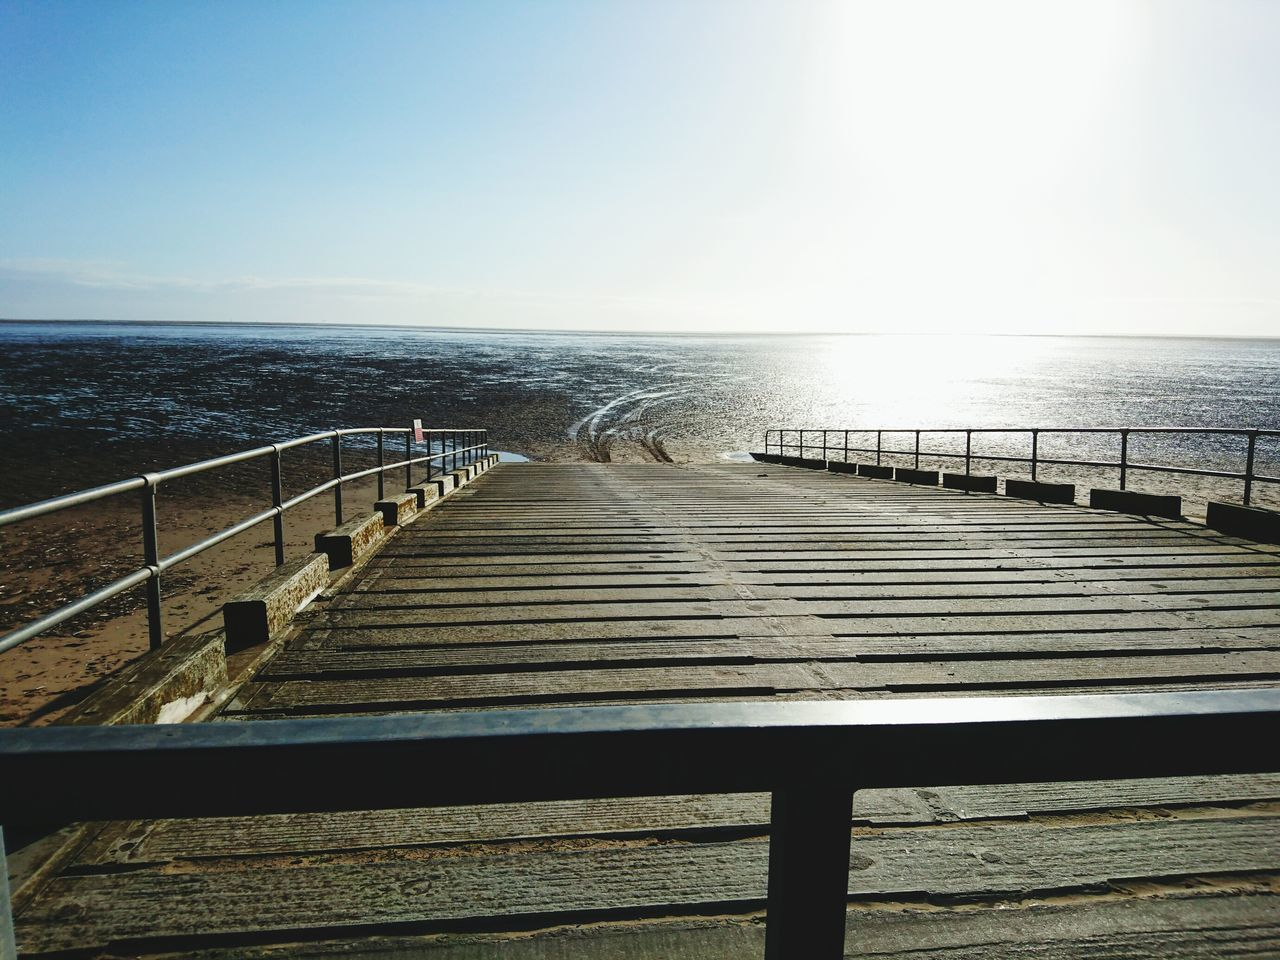 View Of Pier On Sea